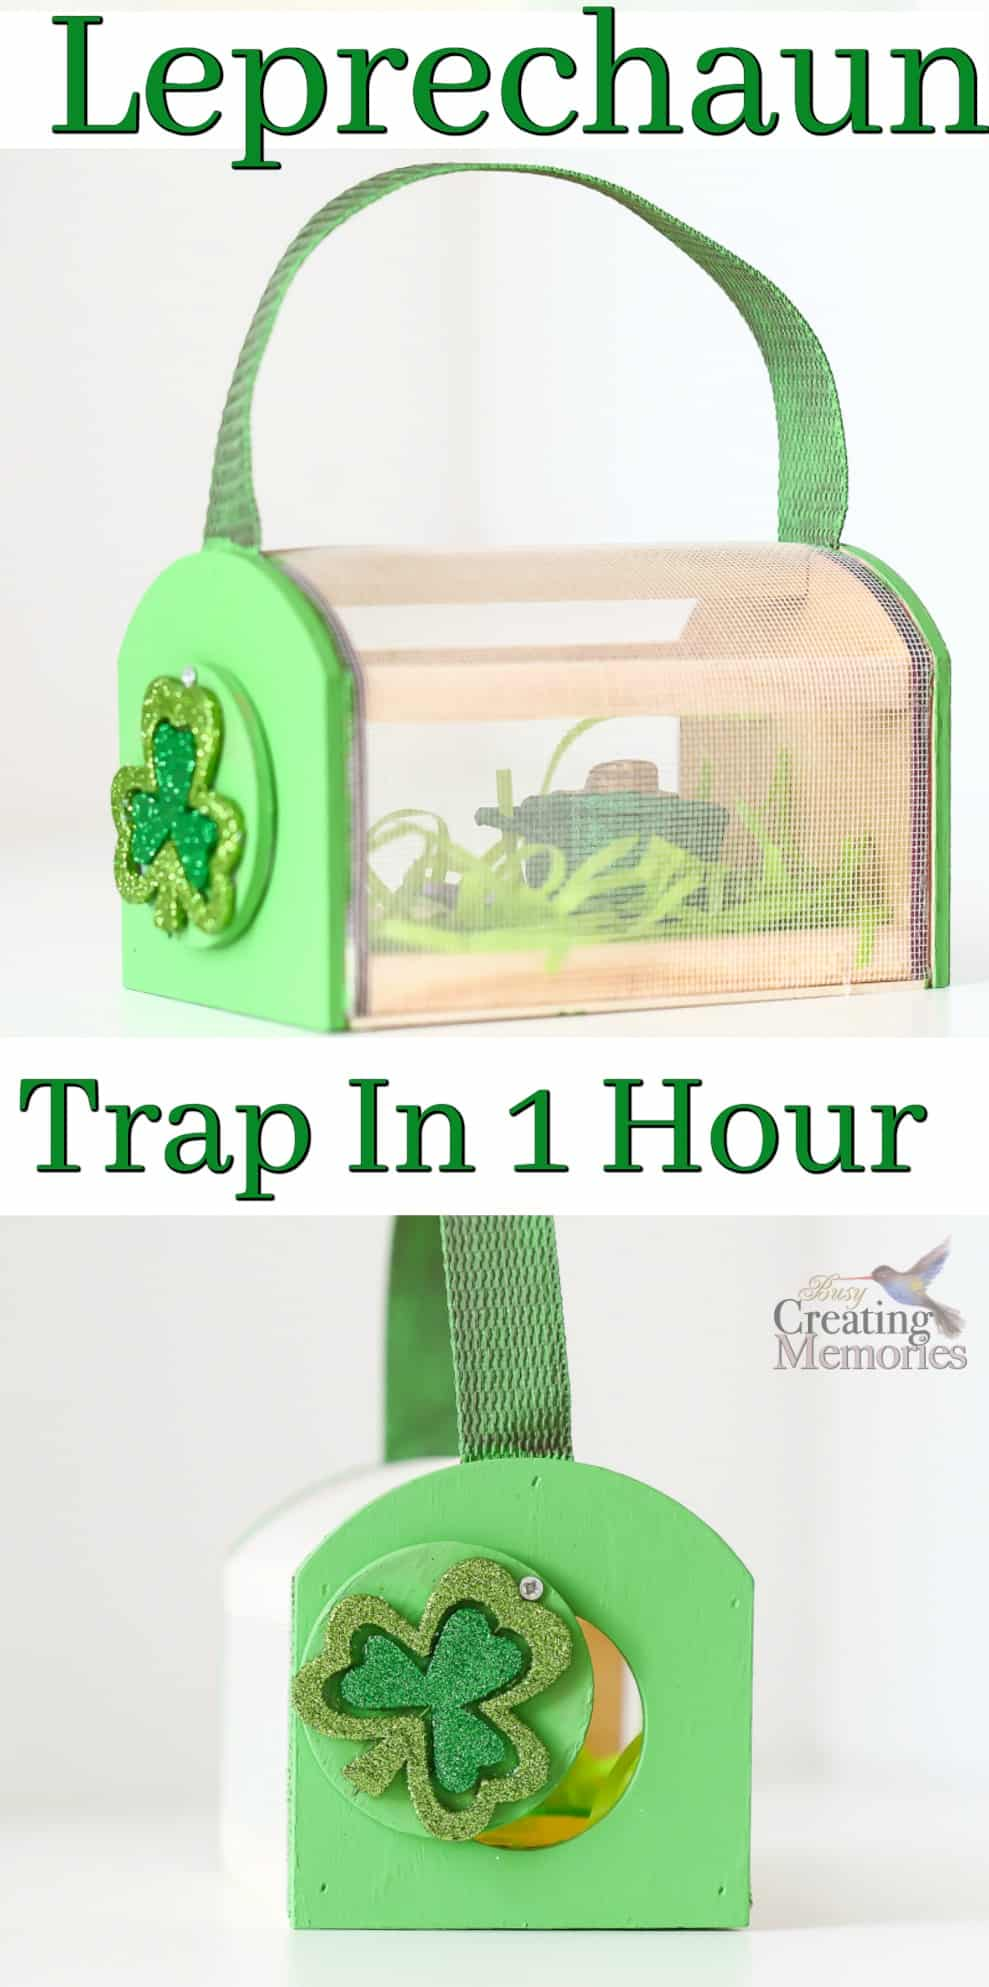 SIMPLE LEPRECHAUN TRAP FOR KIDS